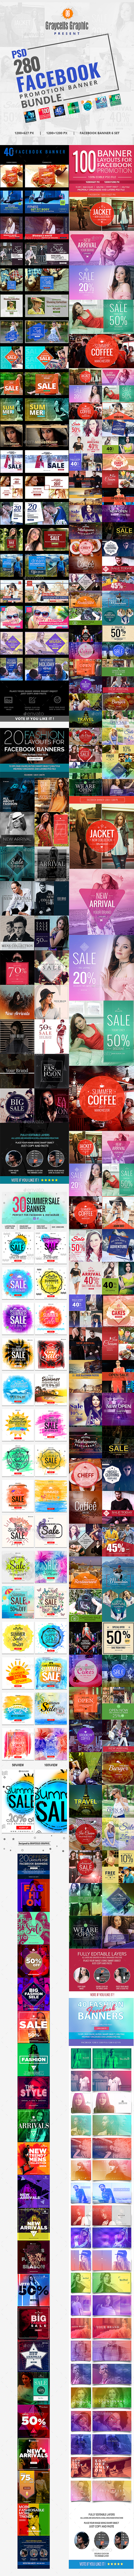 280 Facebook Banner Bundle - Social Media Web Elements